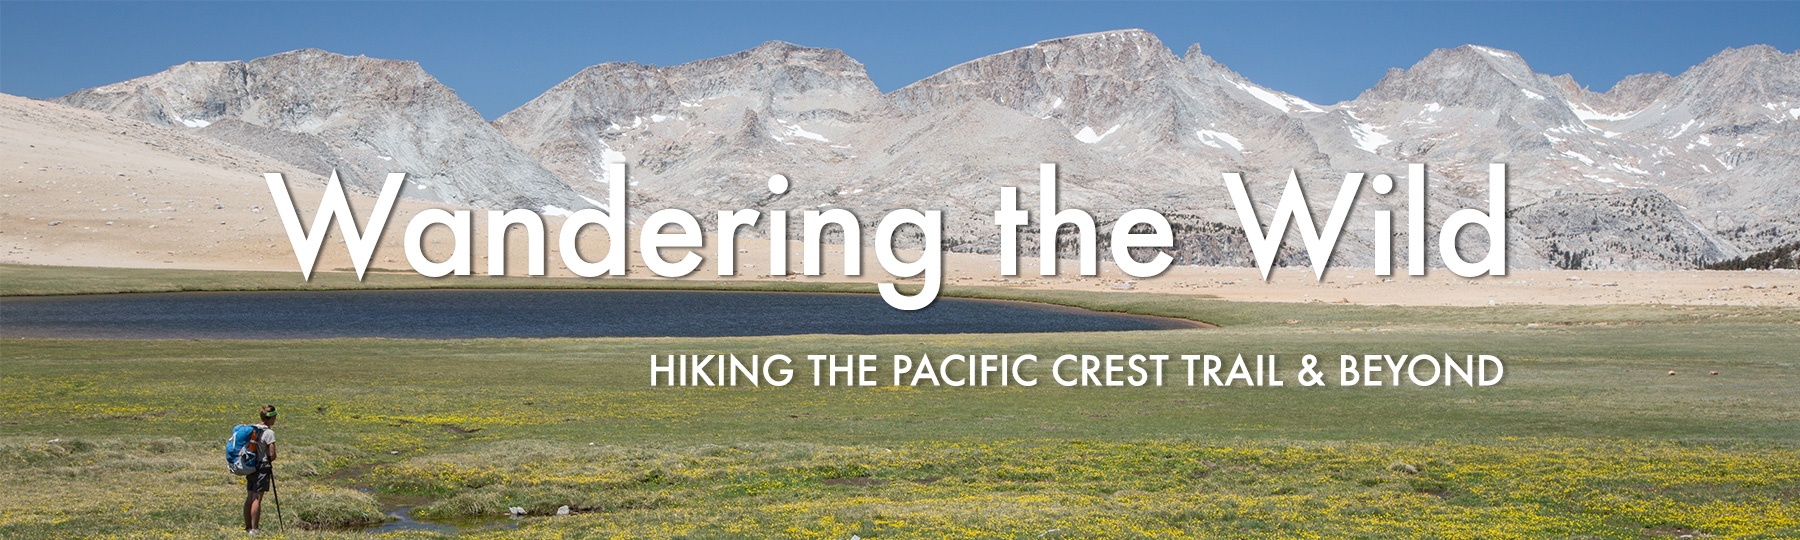 Wandering the Wild: Hiking the Pacific Crest Trail and Beyond